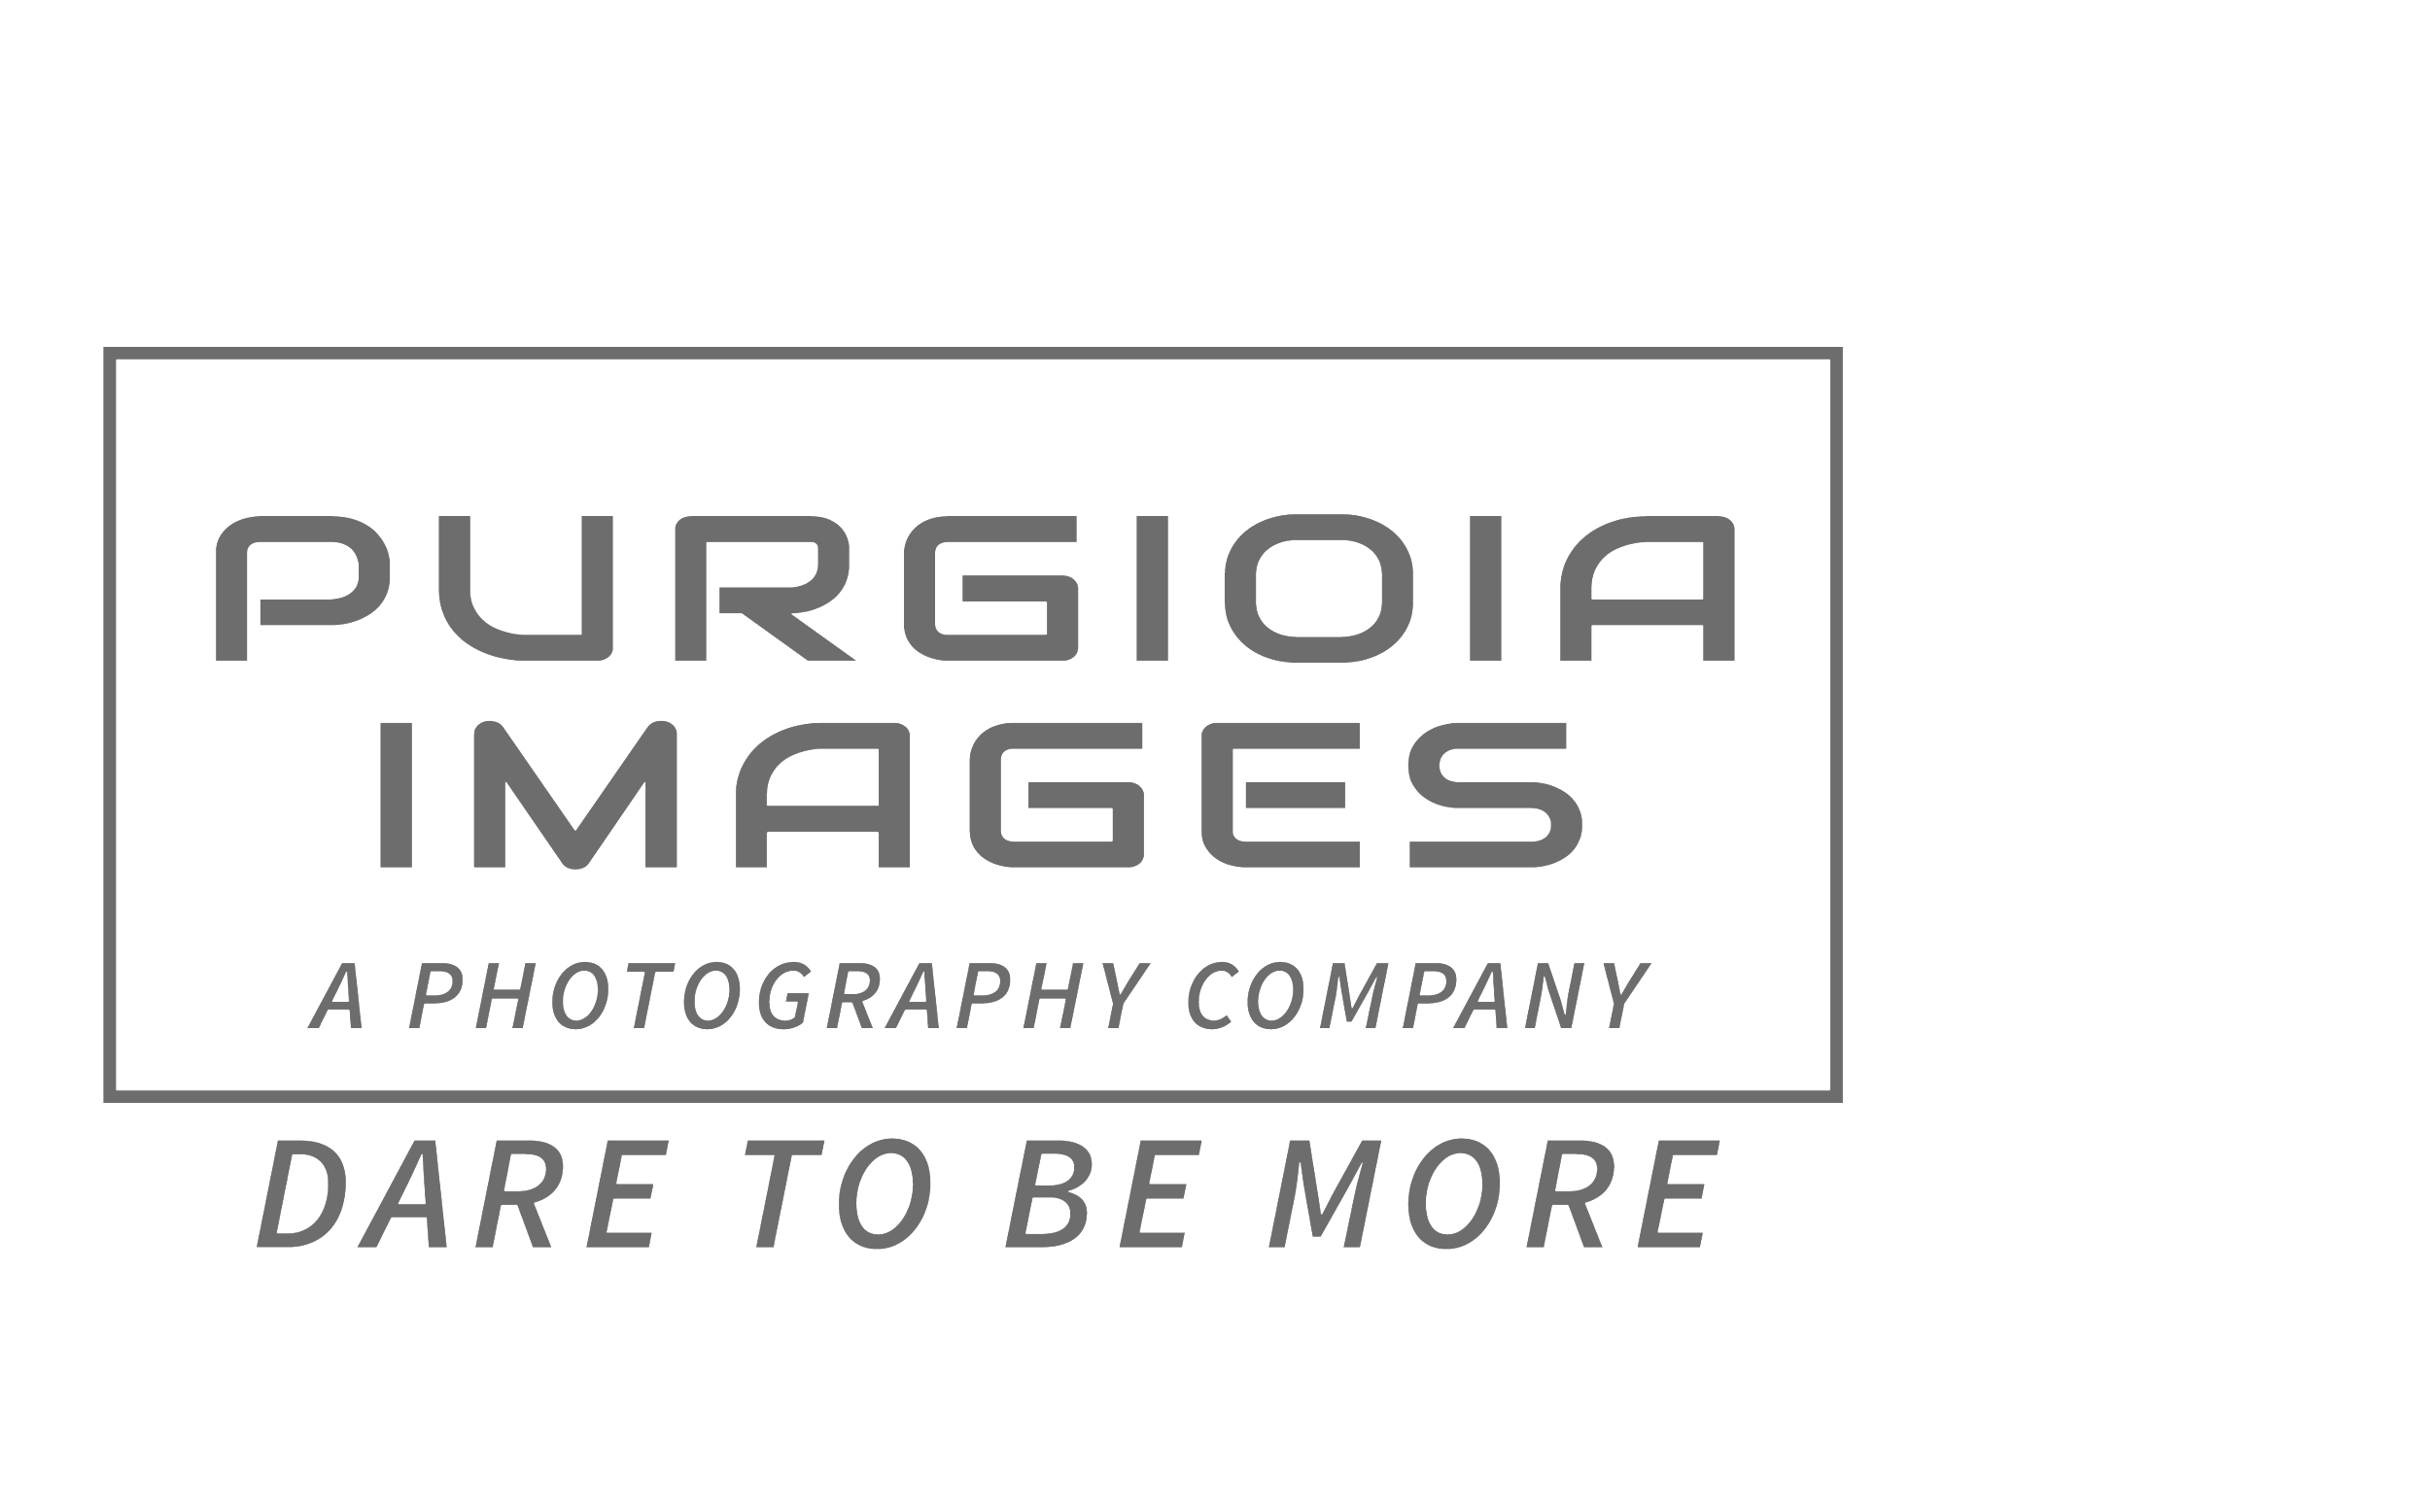 Purgioia Images